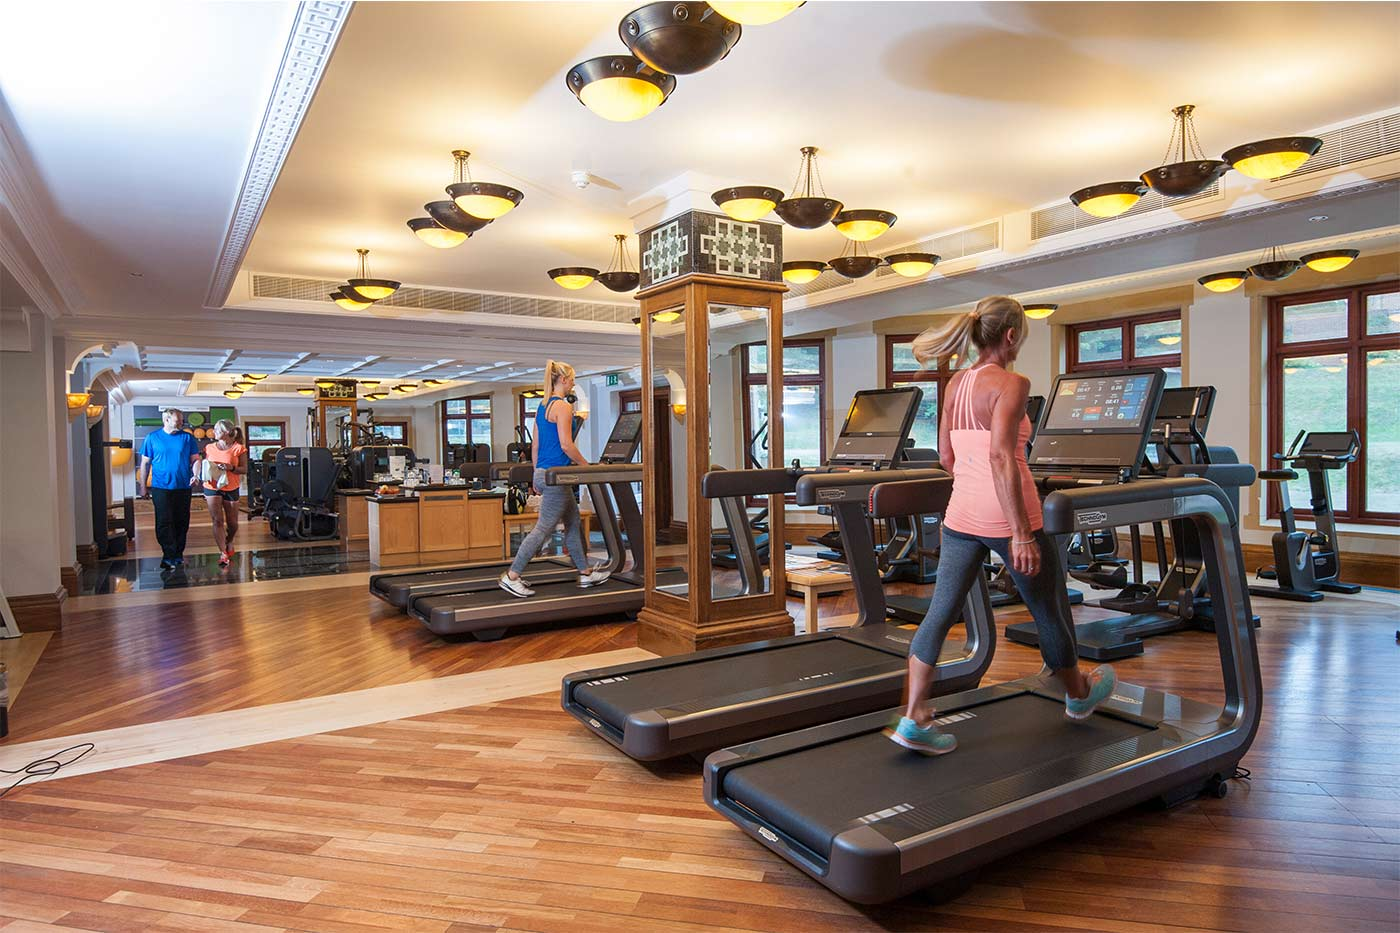 Pennyhill Park gym